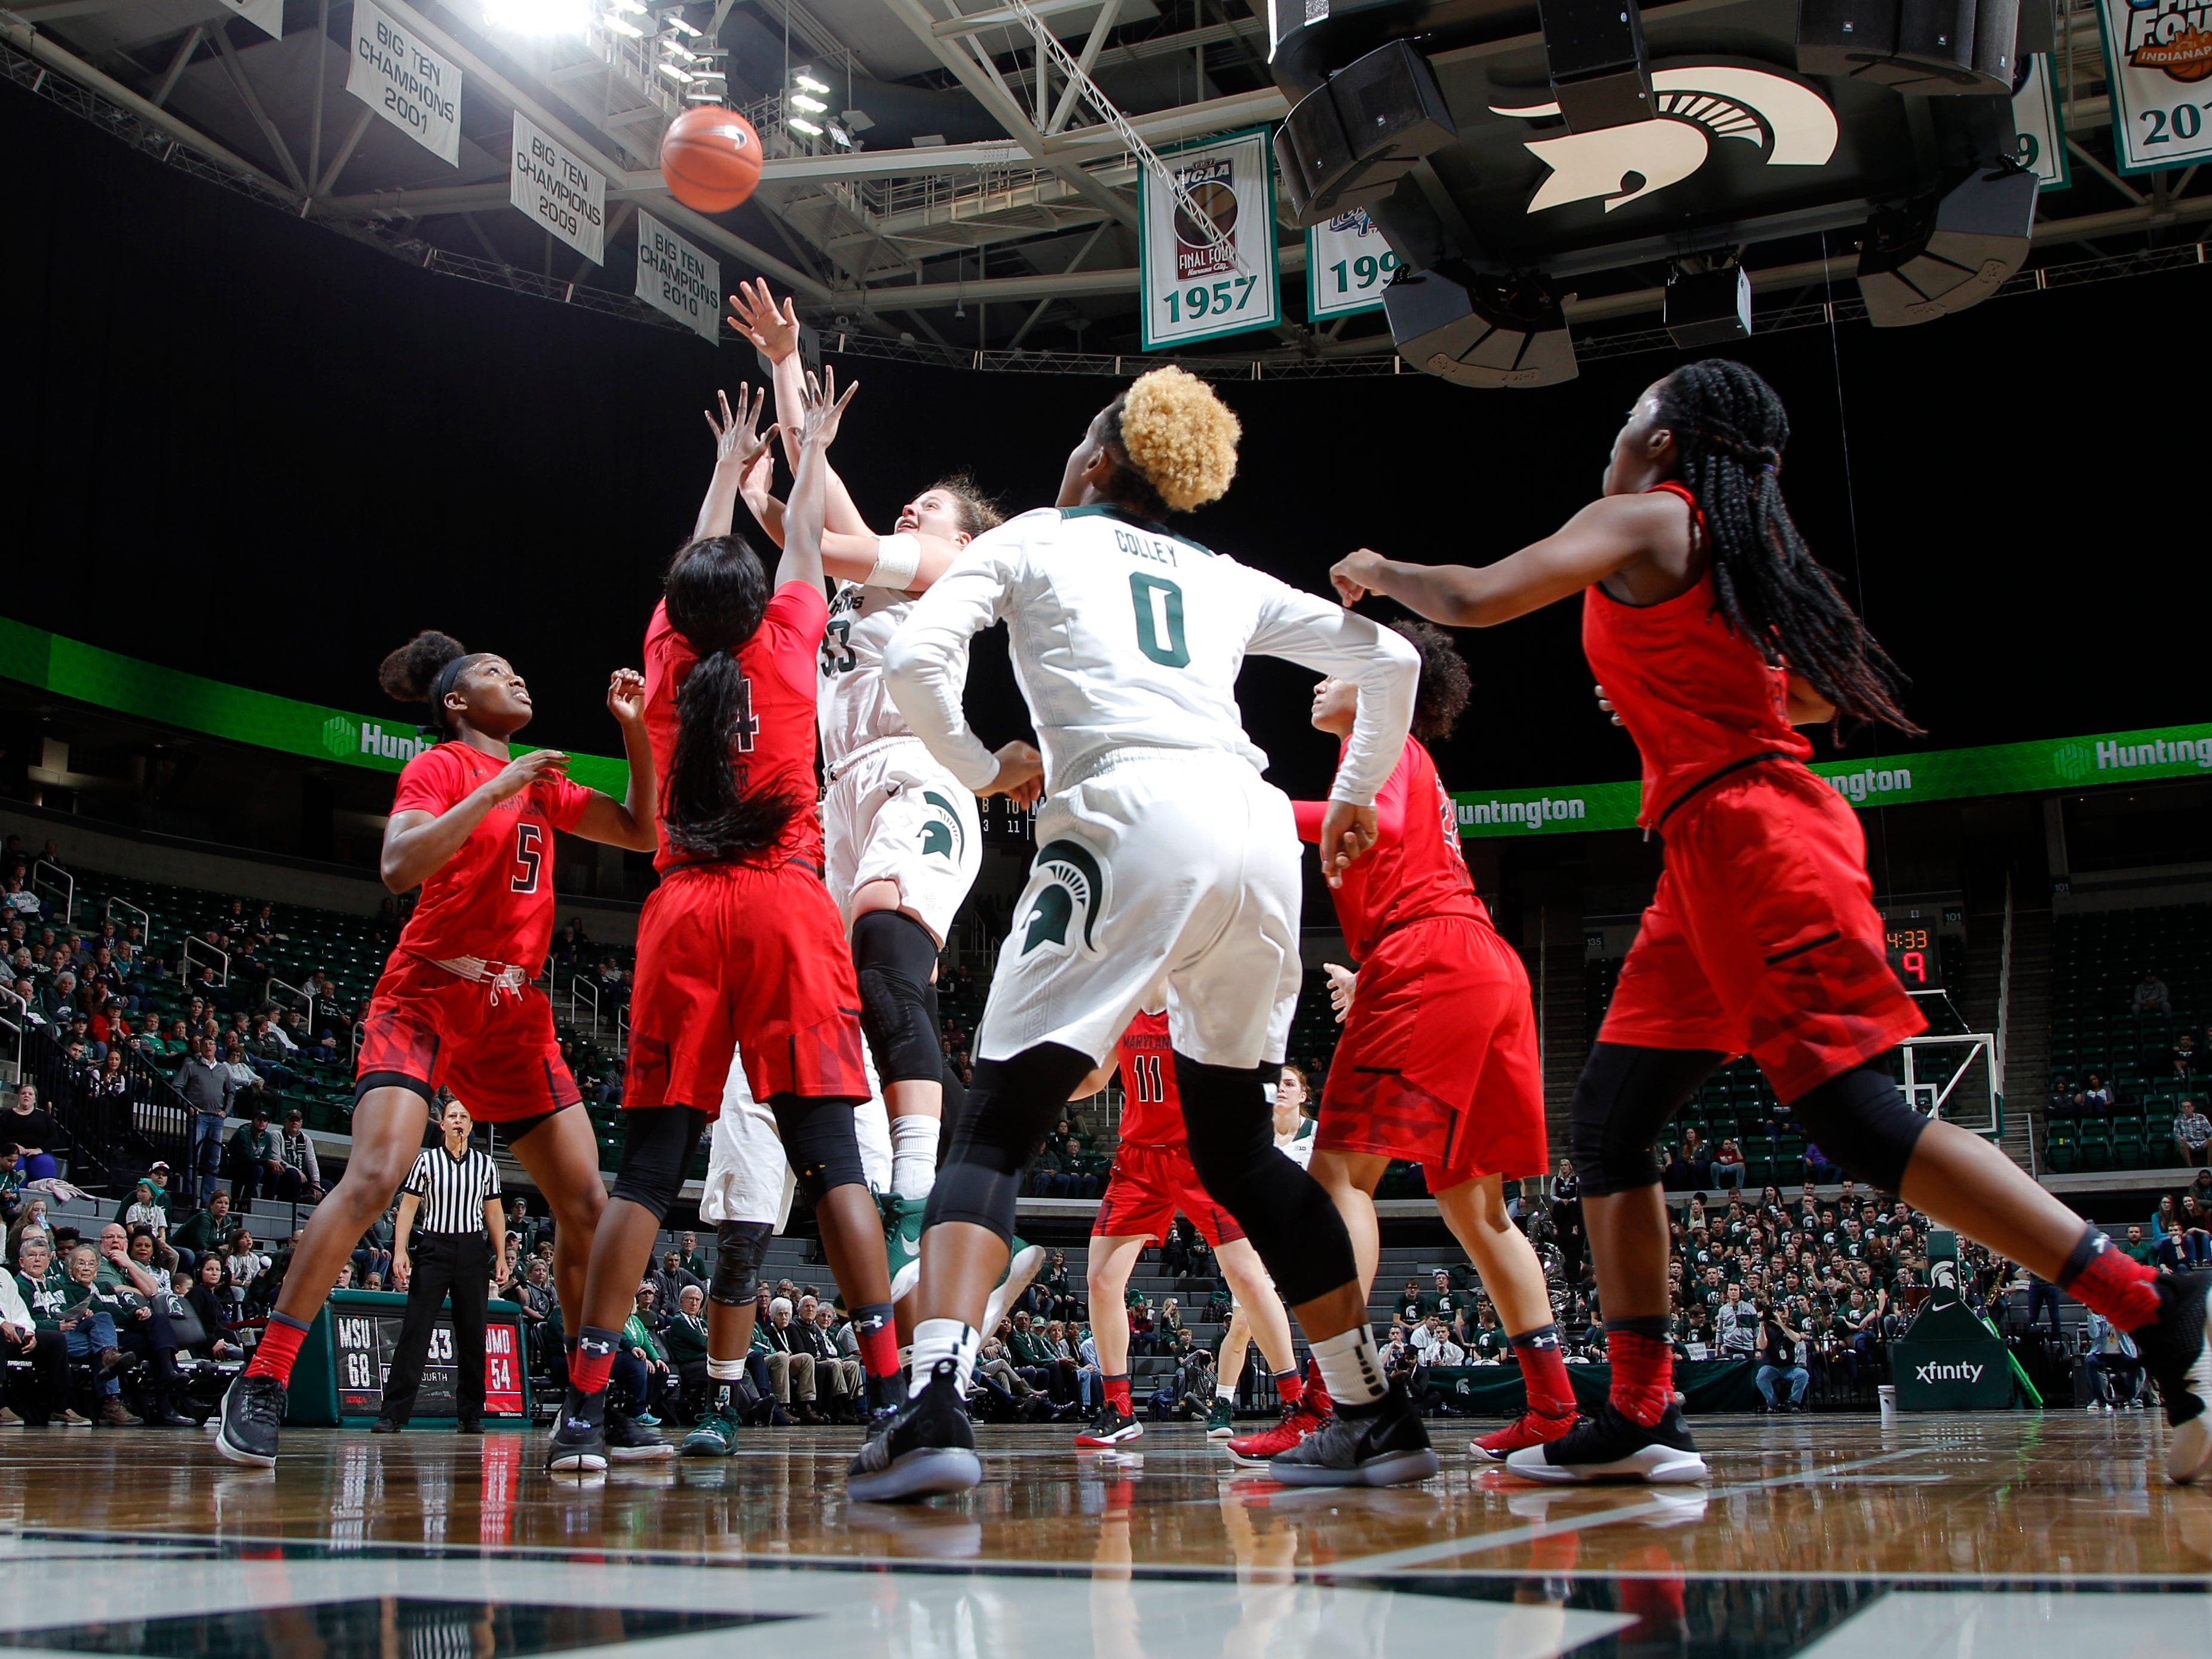 Michigan State's Jenna Allen (33) shoots against Maryland's Brianna Fraser, Thursday, Jan. 17, 2019, in East Lansing, Mich.